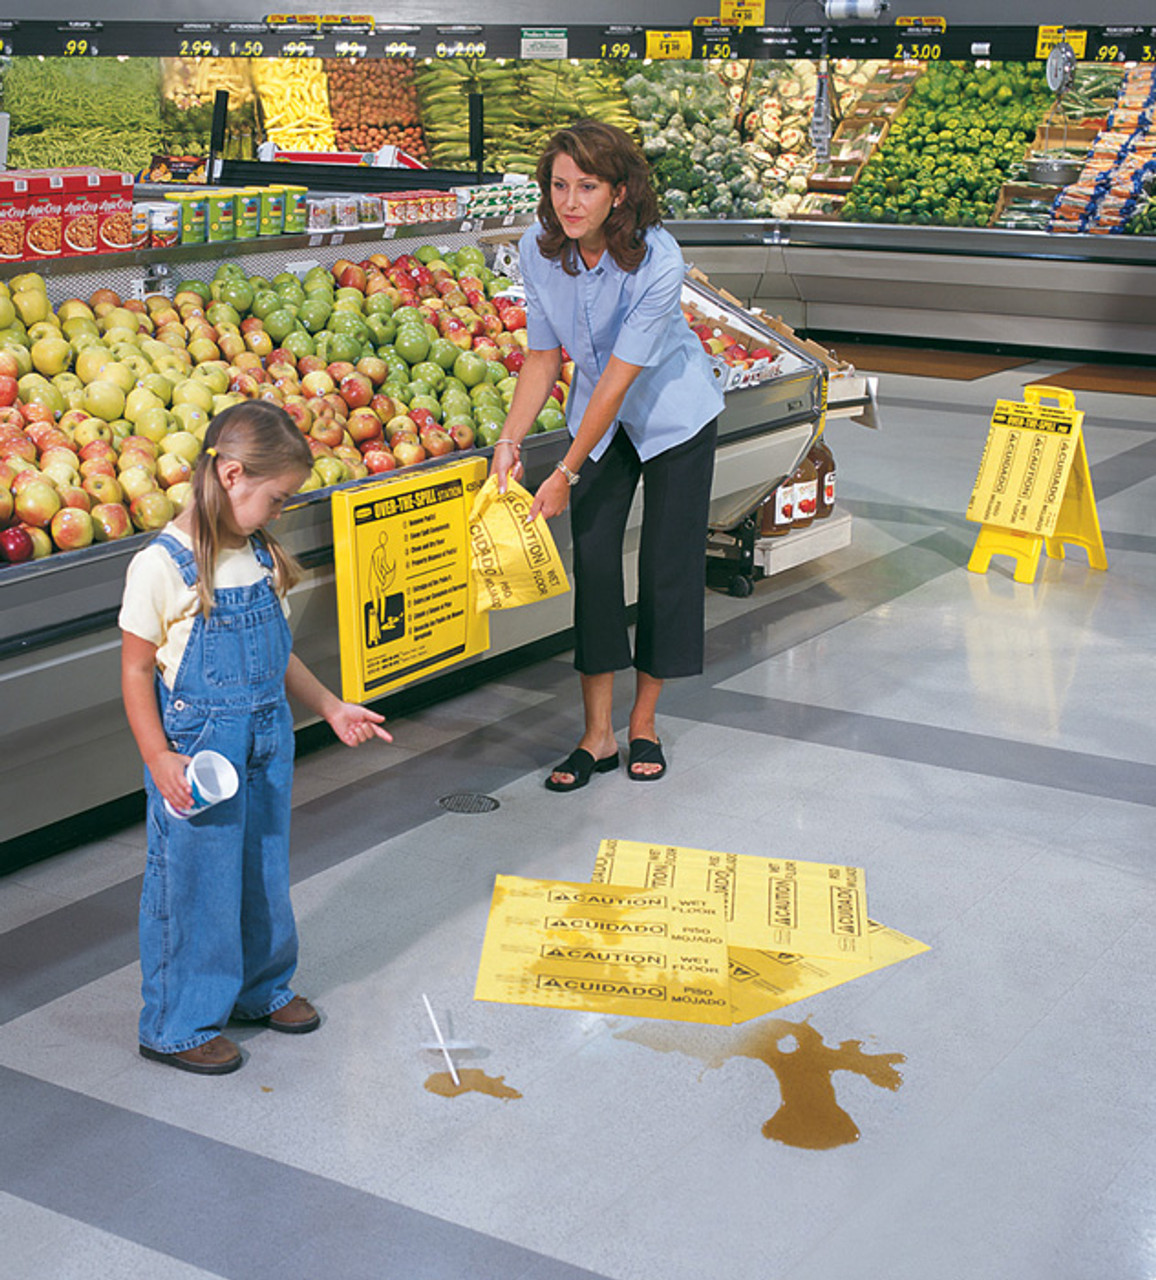 Spill Pads help keep spills from becoming a dangerous situation and liability.